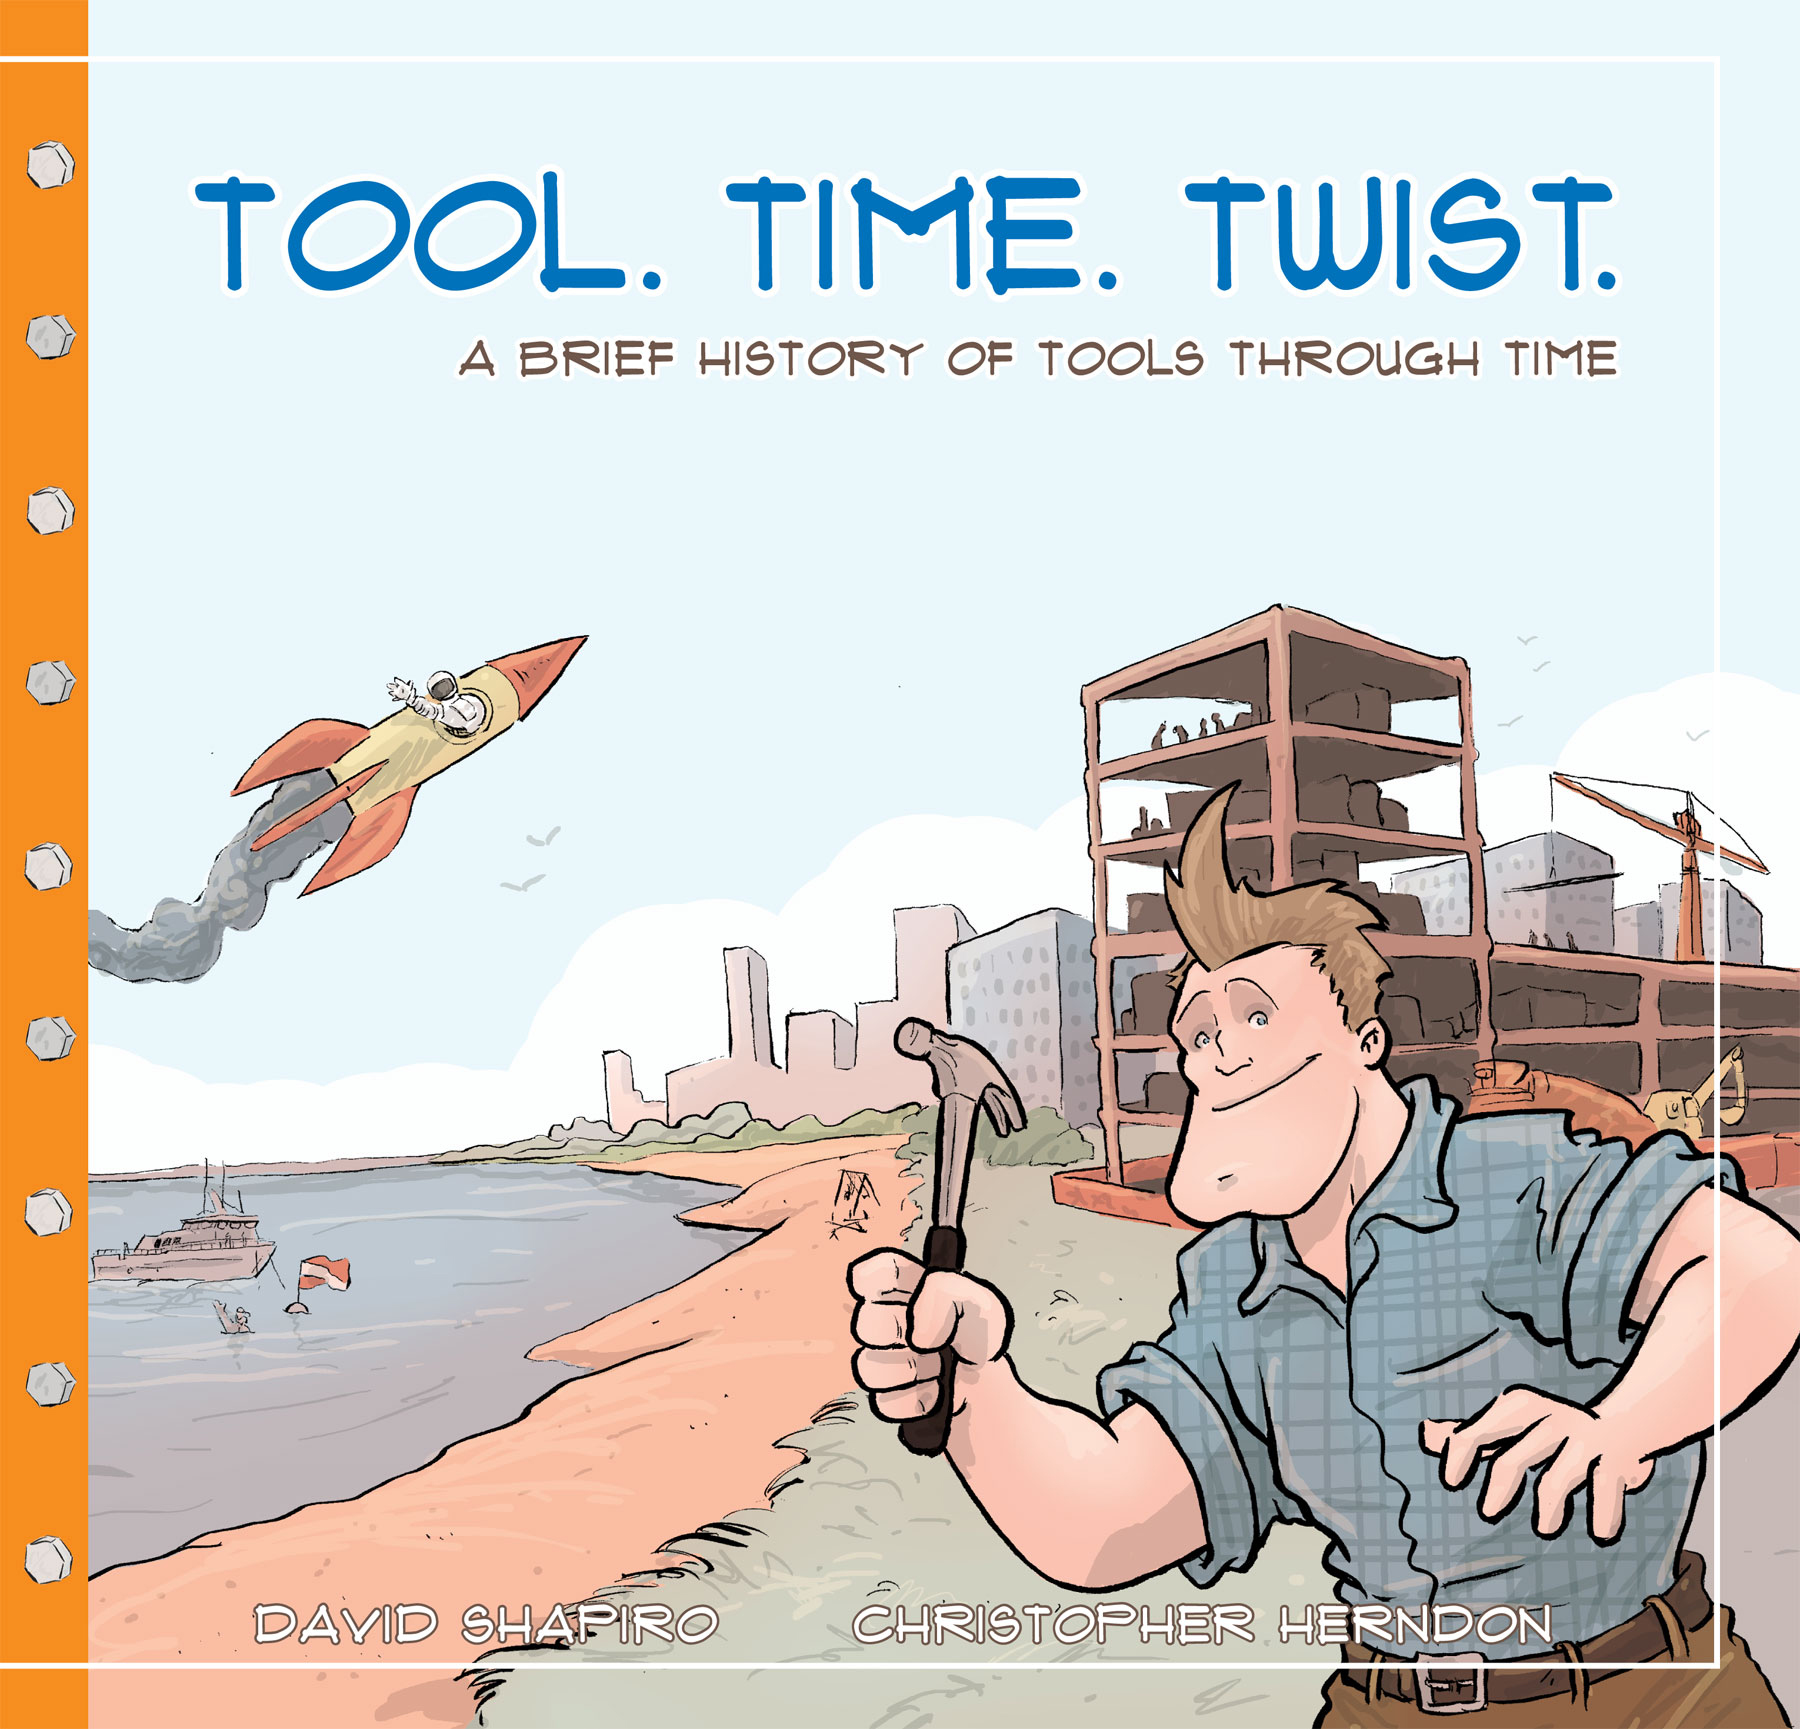 tooltimetwist.jpg